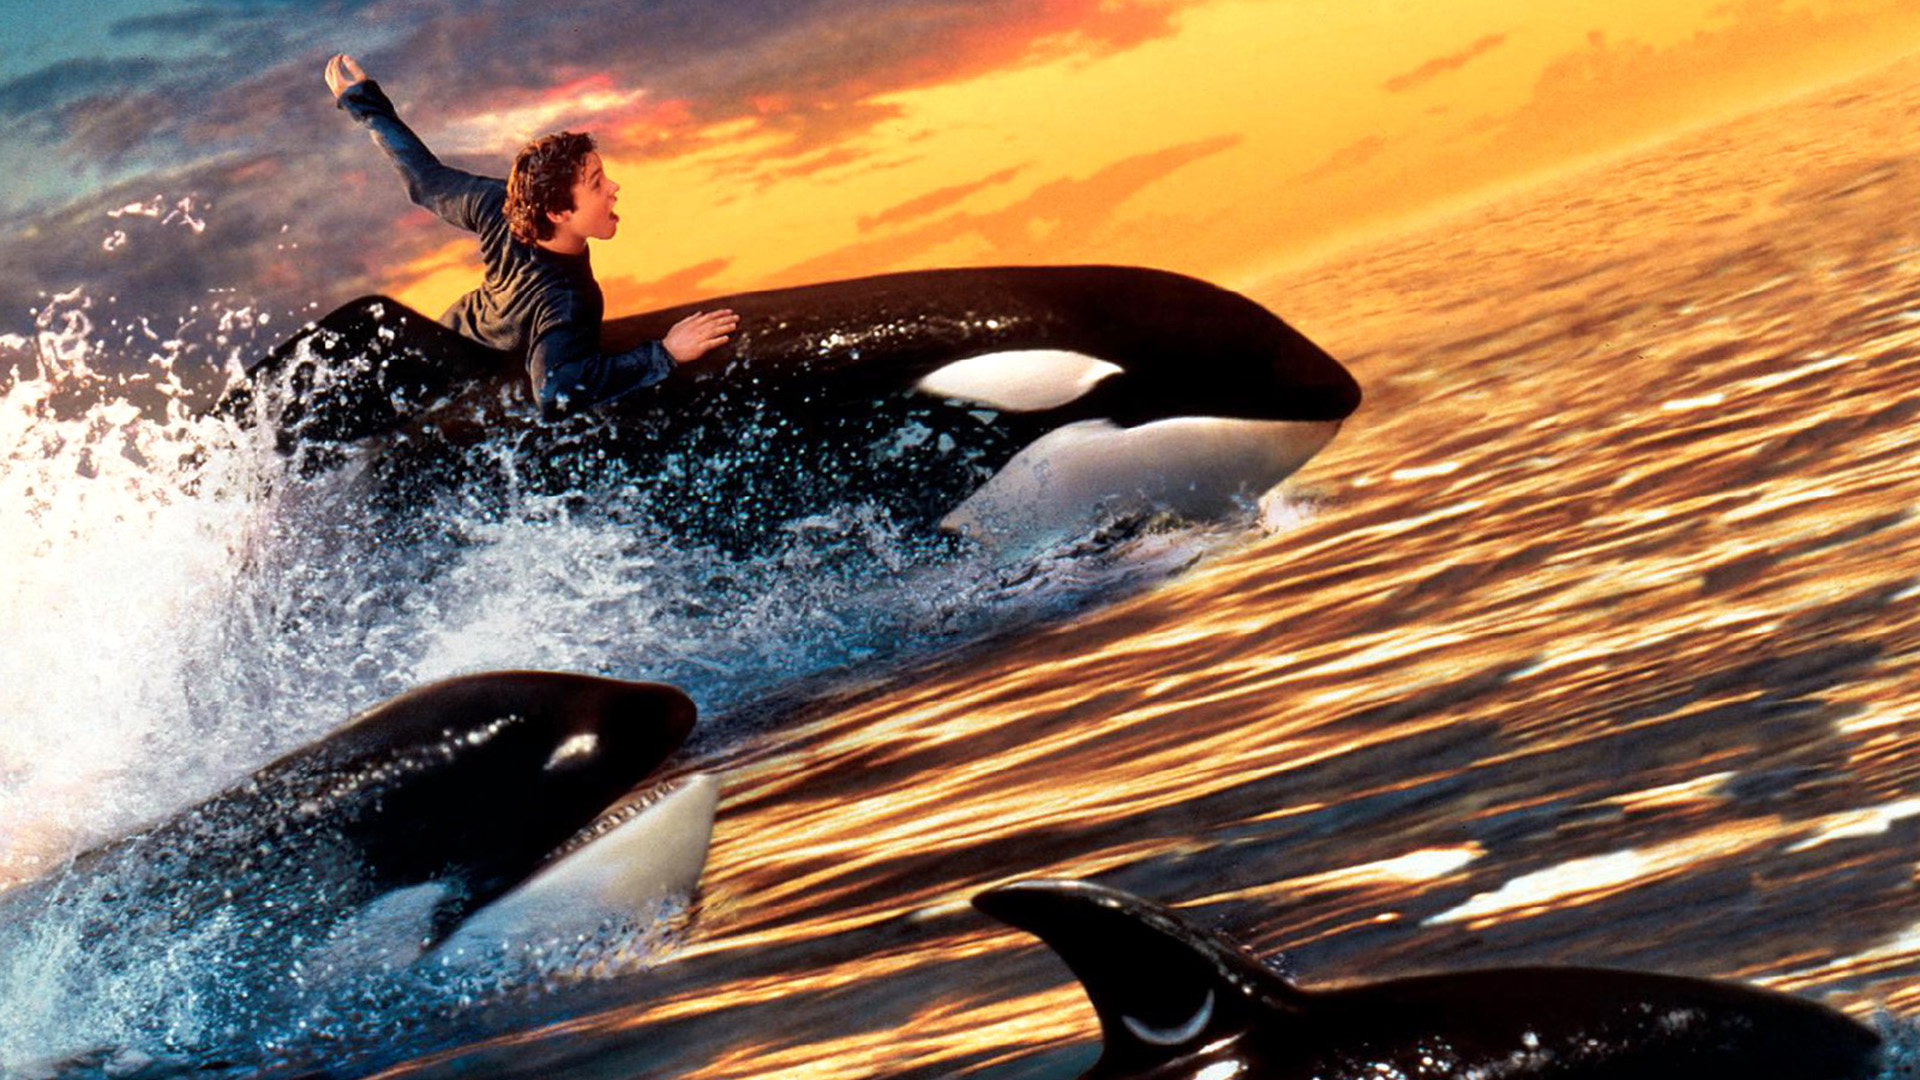 free willy 2 the adventure home full hd wallpaper and